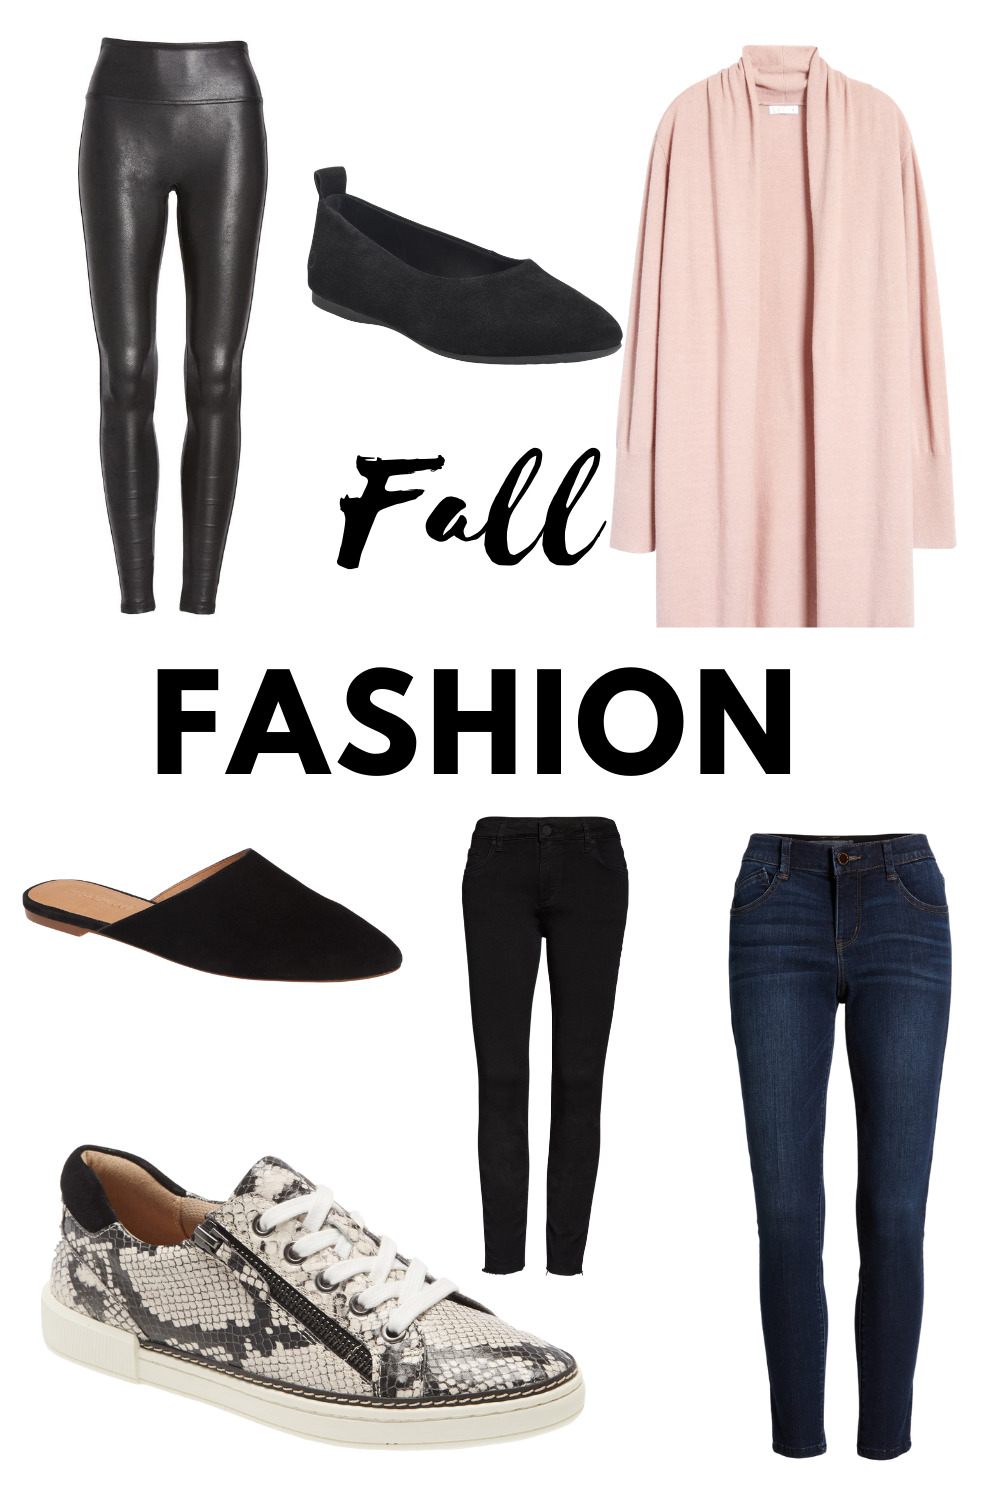 graphic collage of fall fashion ideas for women